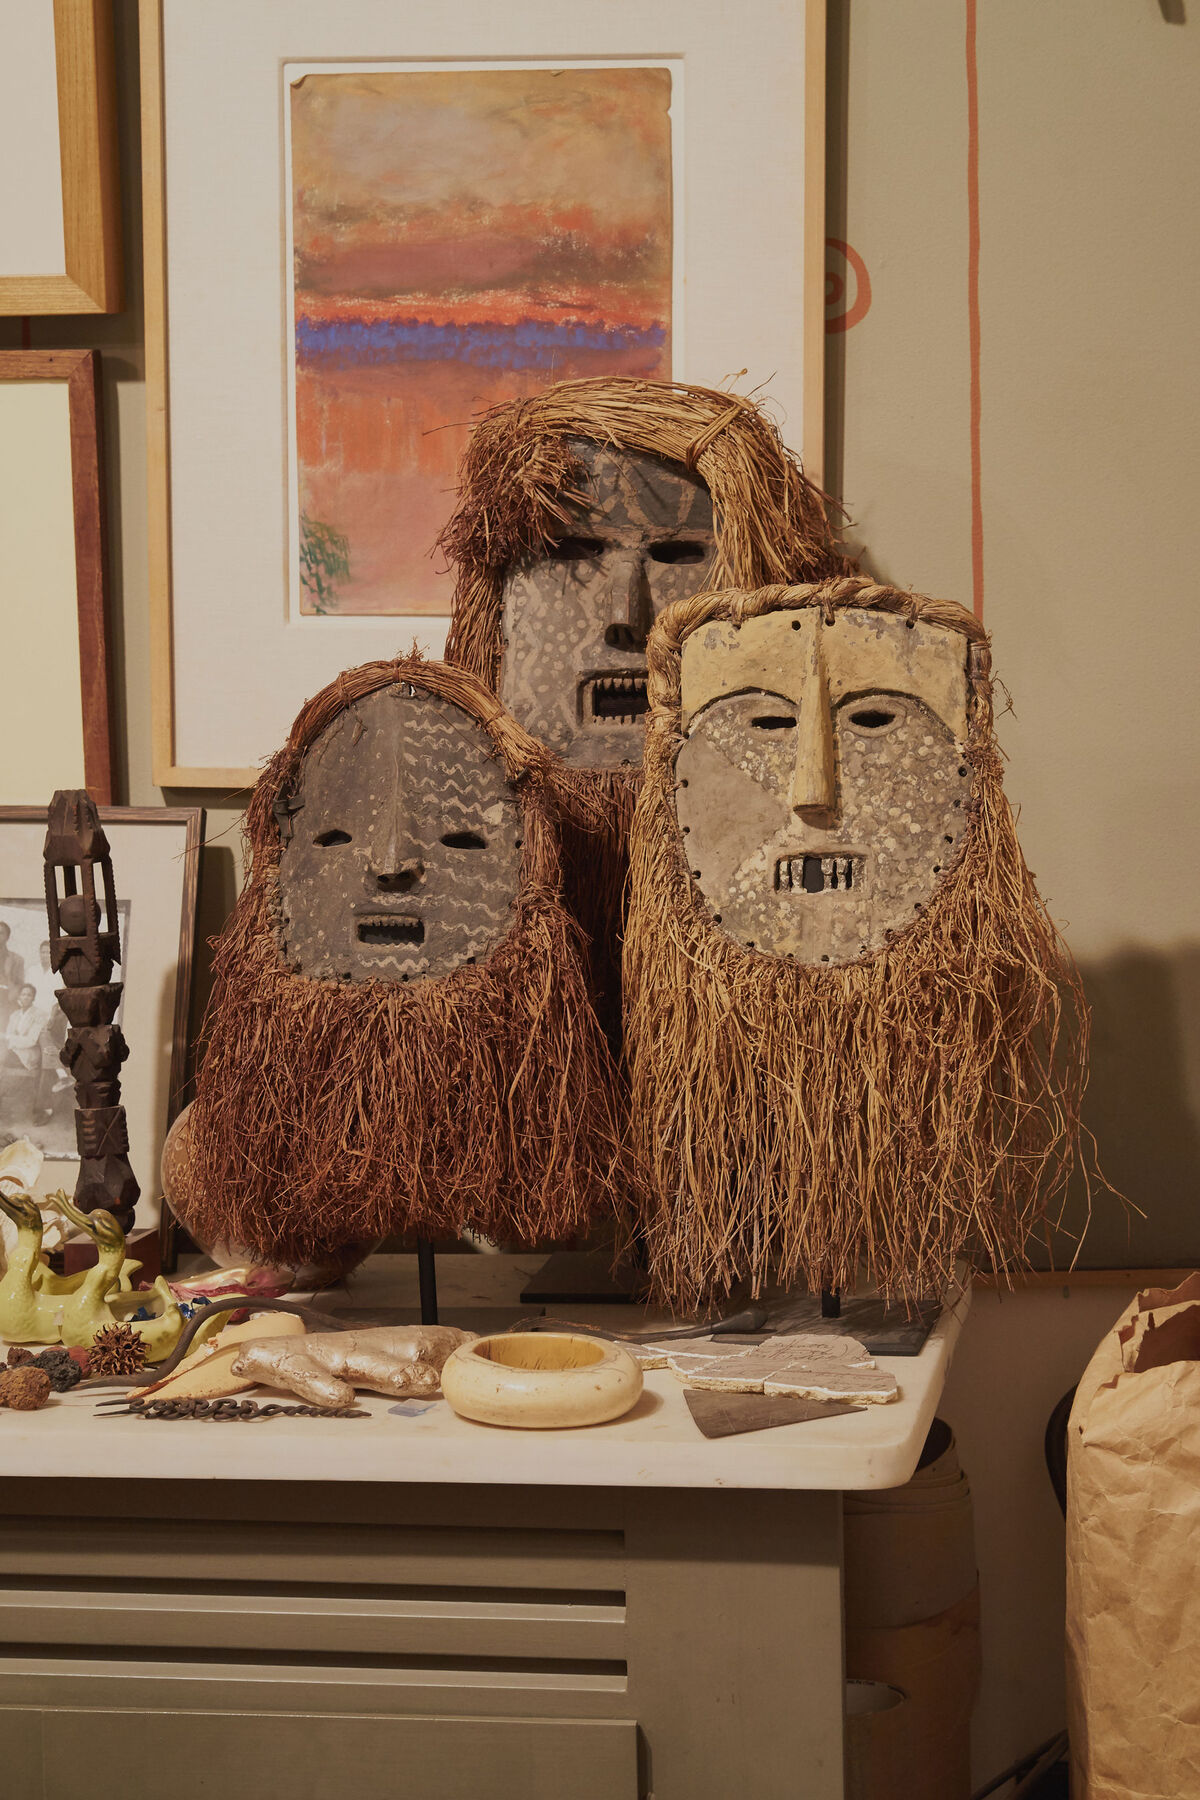 Three masks by Ndaaka artists from the Ituri Rainforest in the Democratic Republic of the Congo greet dinner guests at Fagaly. Behind them, a pastel by Charles Woodward Hutson hangs on the wall, a self-taught artist who lived and worked in New Orleans. Photo by Michael Adno for Artsy.